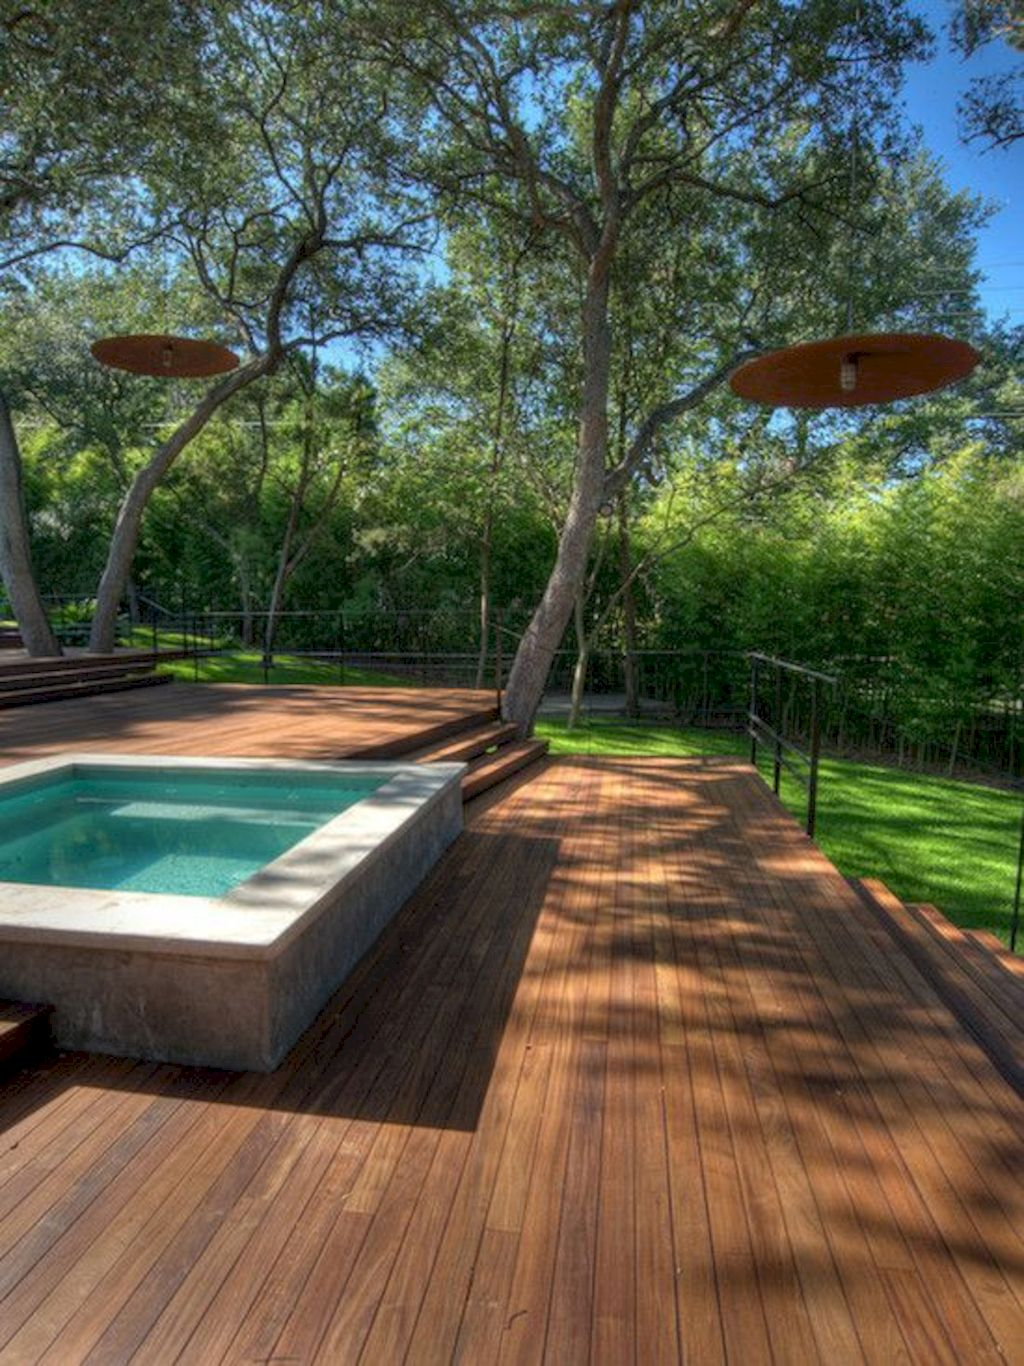 Affordable rectangular pool designs built in small areas that give a lavish look getting along with beautiful landscape (9)